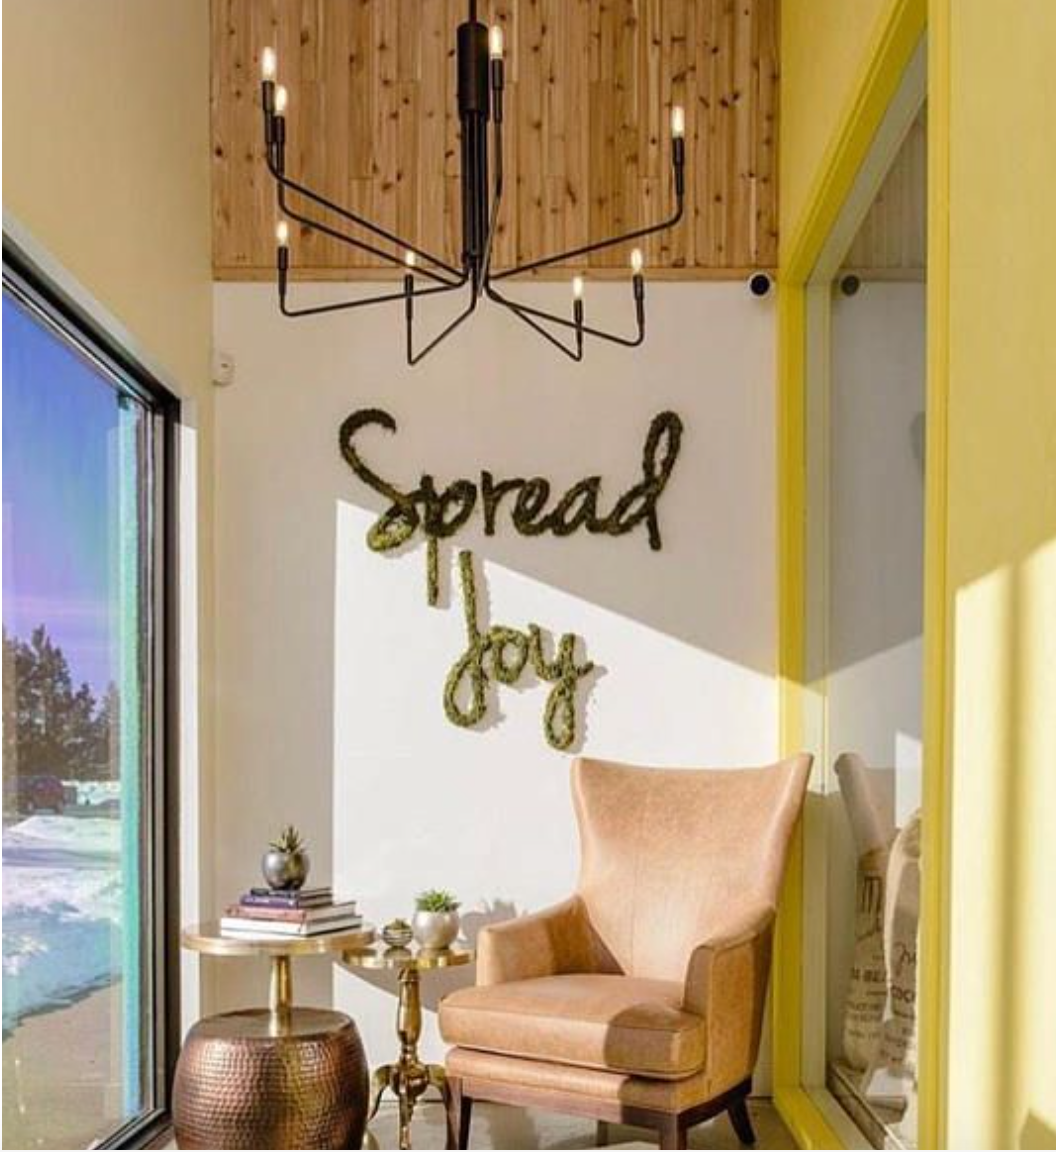 Spread Joy Moss Lettering - Free Shipping! | Office Wall Art |Natural Wall Art | Plant Wall Decor | Custom Moss Letters | Green Wall